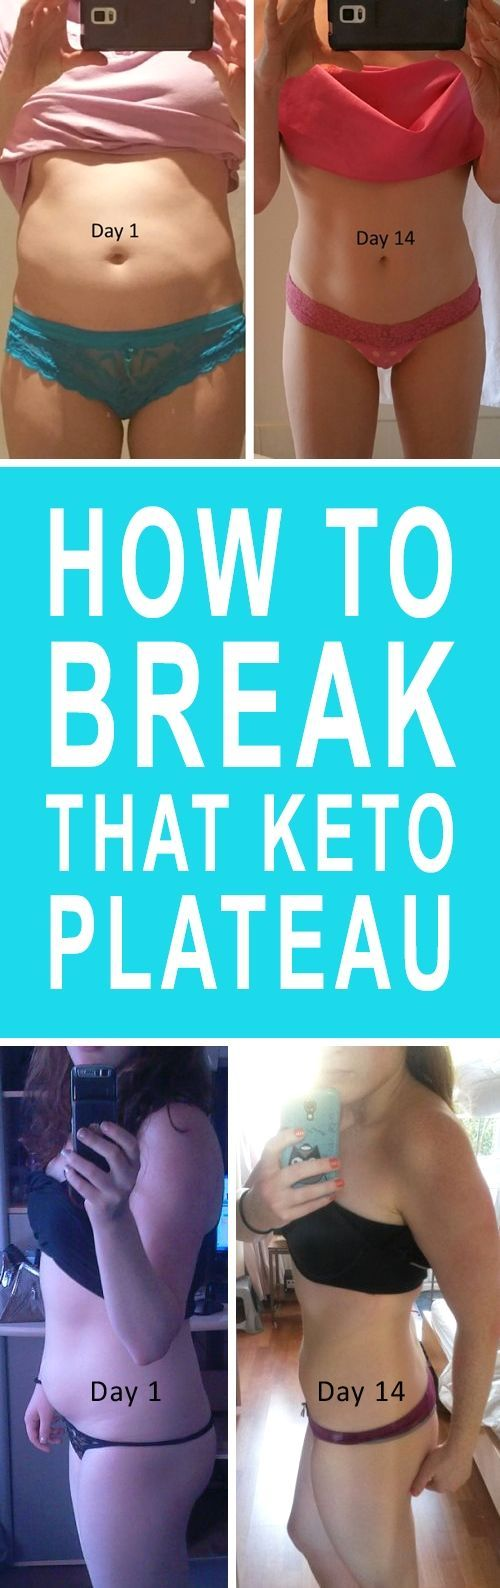 keto diet plan ratio